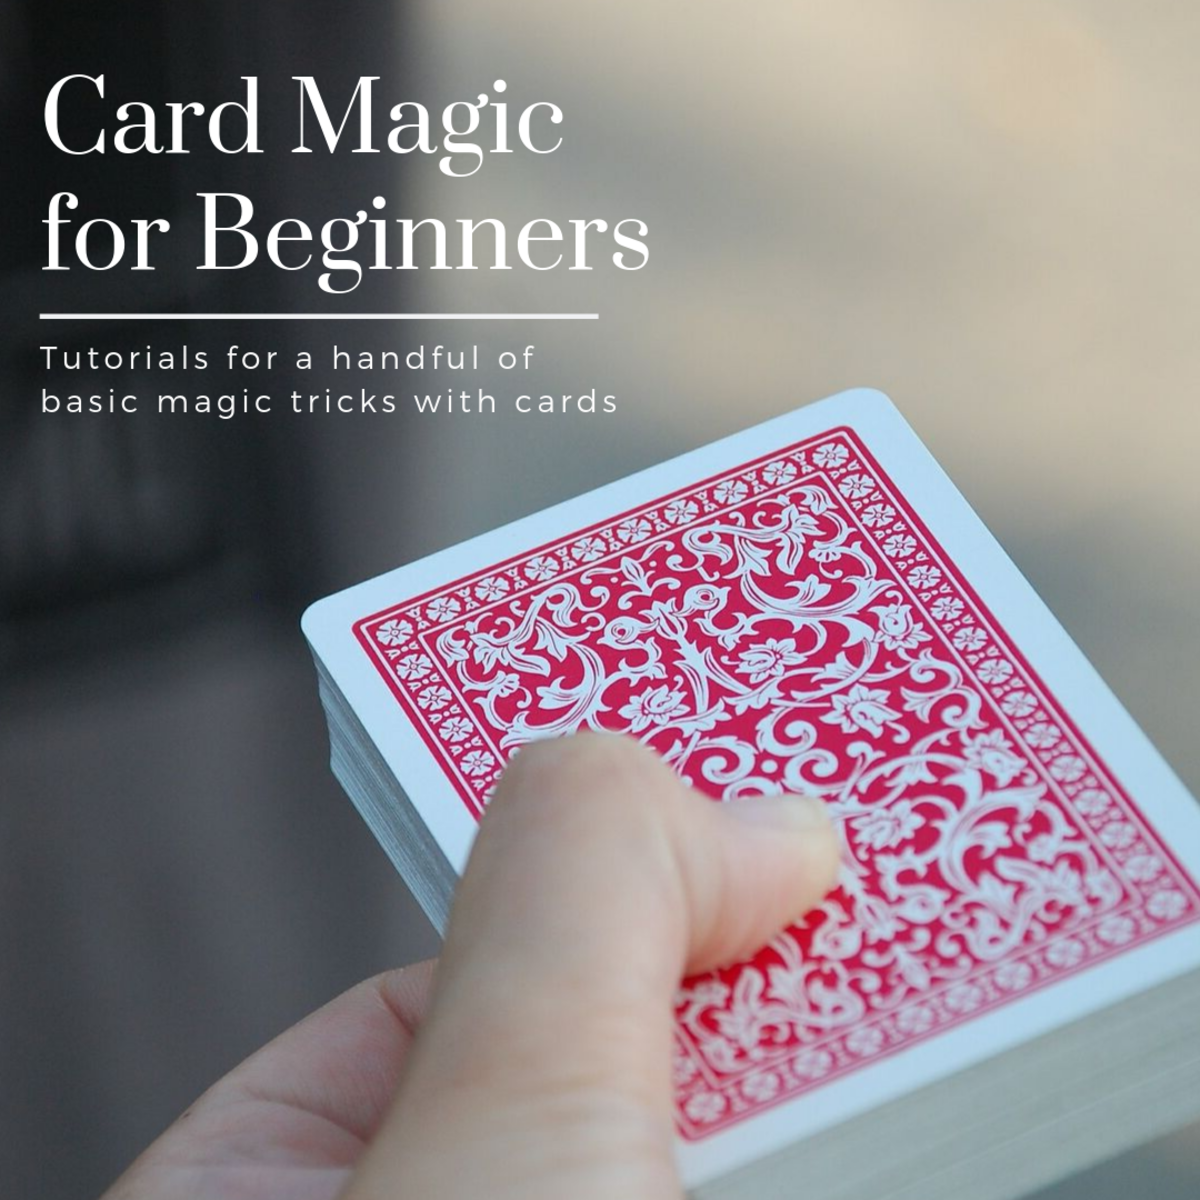 How to Do Card Magic Tricks for Beginners